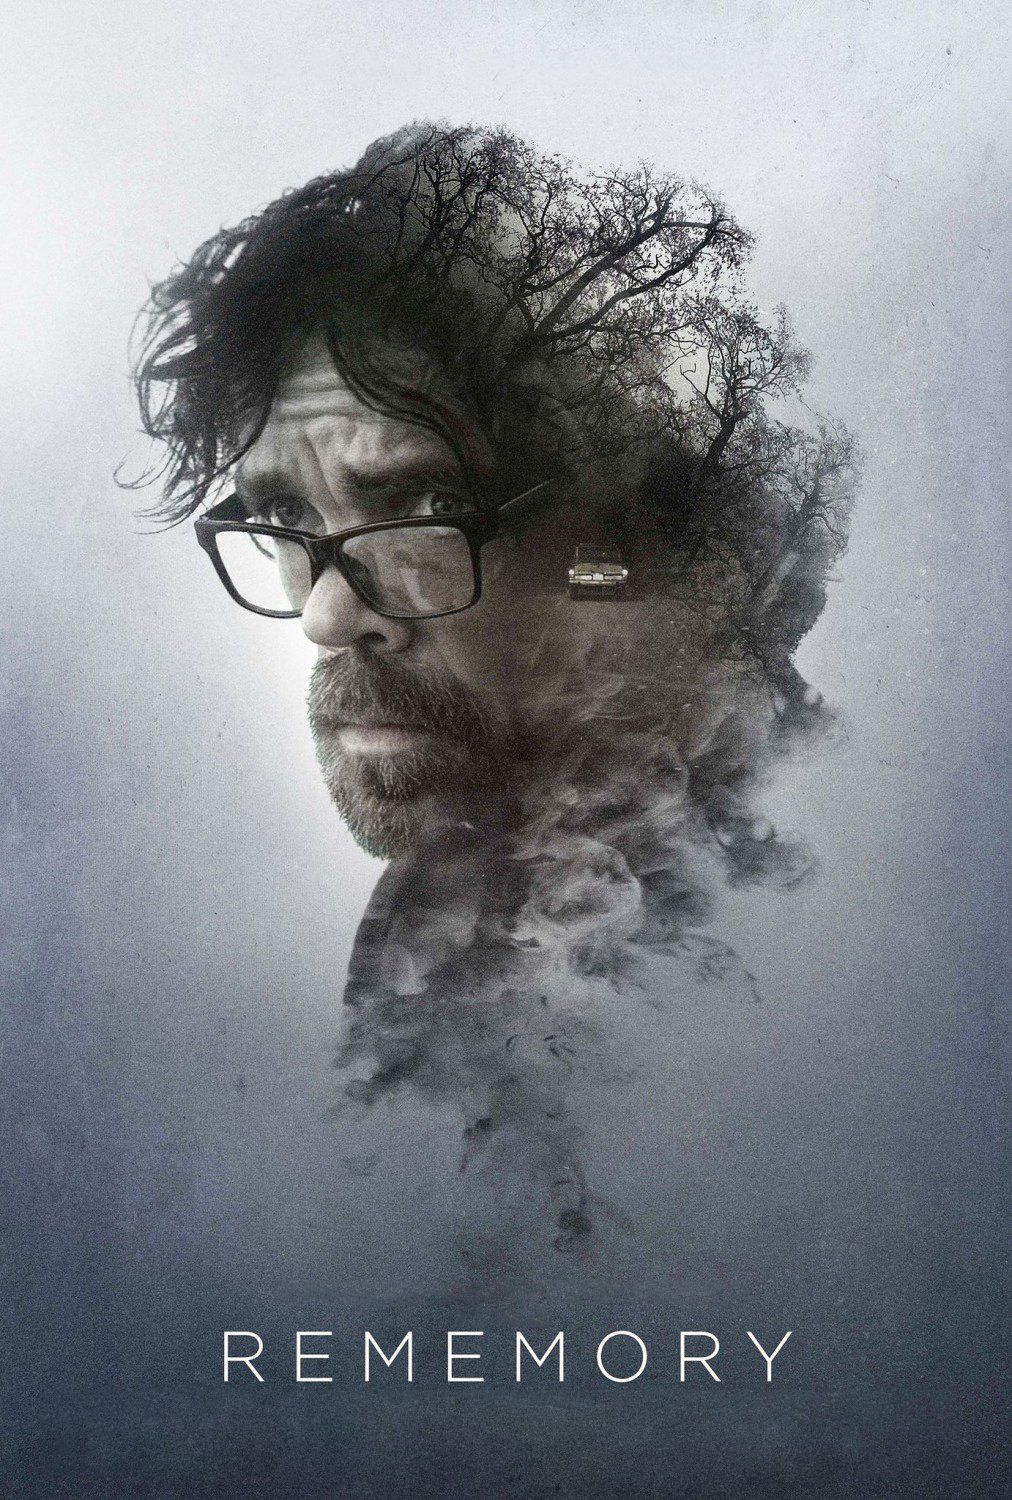 Watch Rememory Full Hd Movie Online Hd Movies Tv Series Online